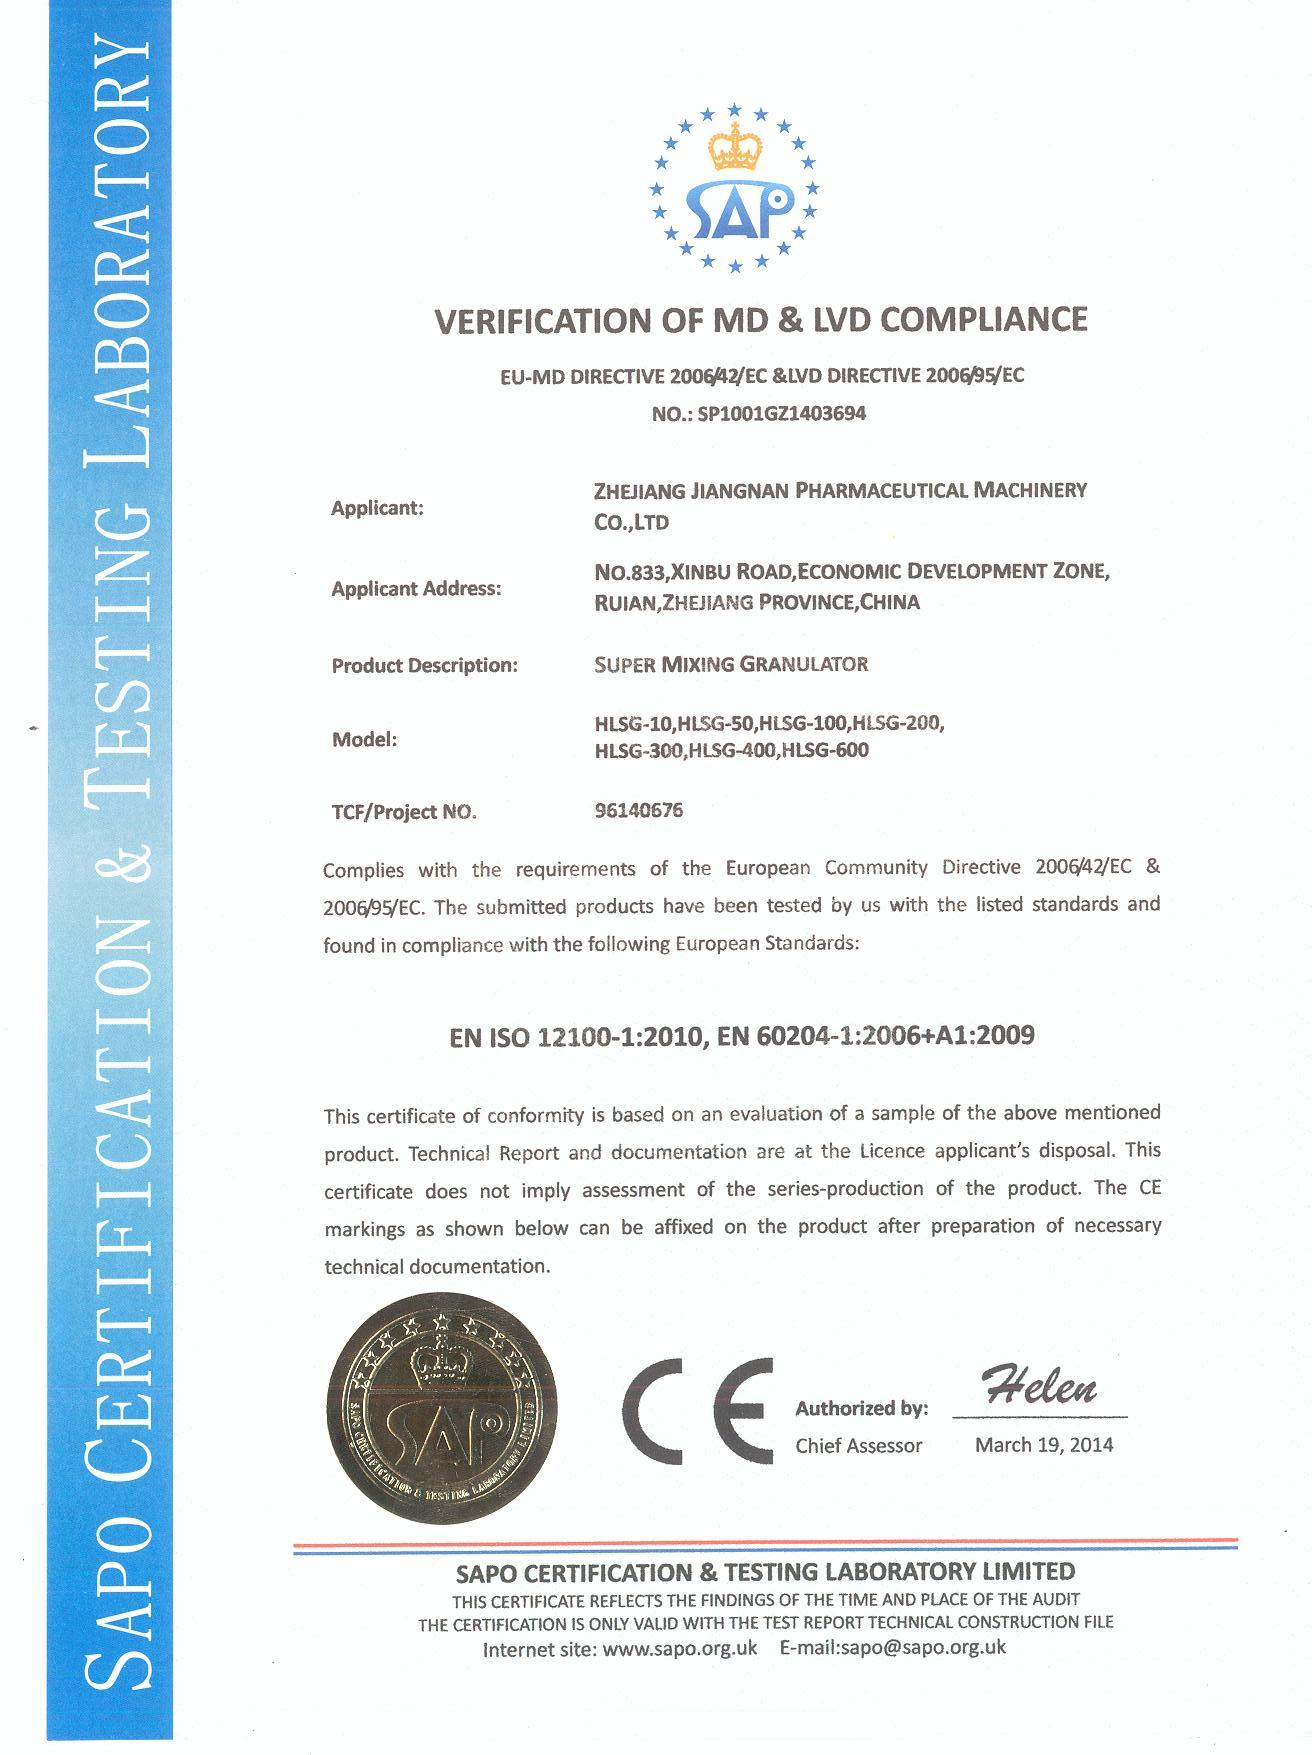 CE Certificate of Super Mixing Granulator